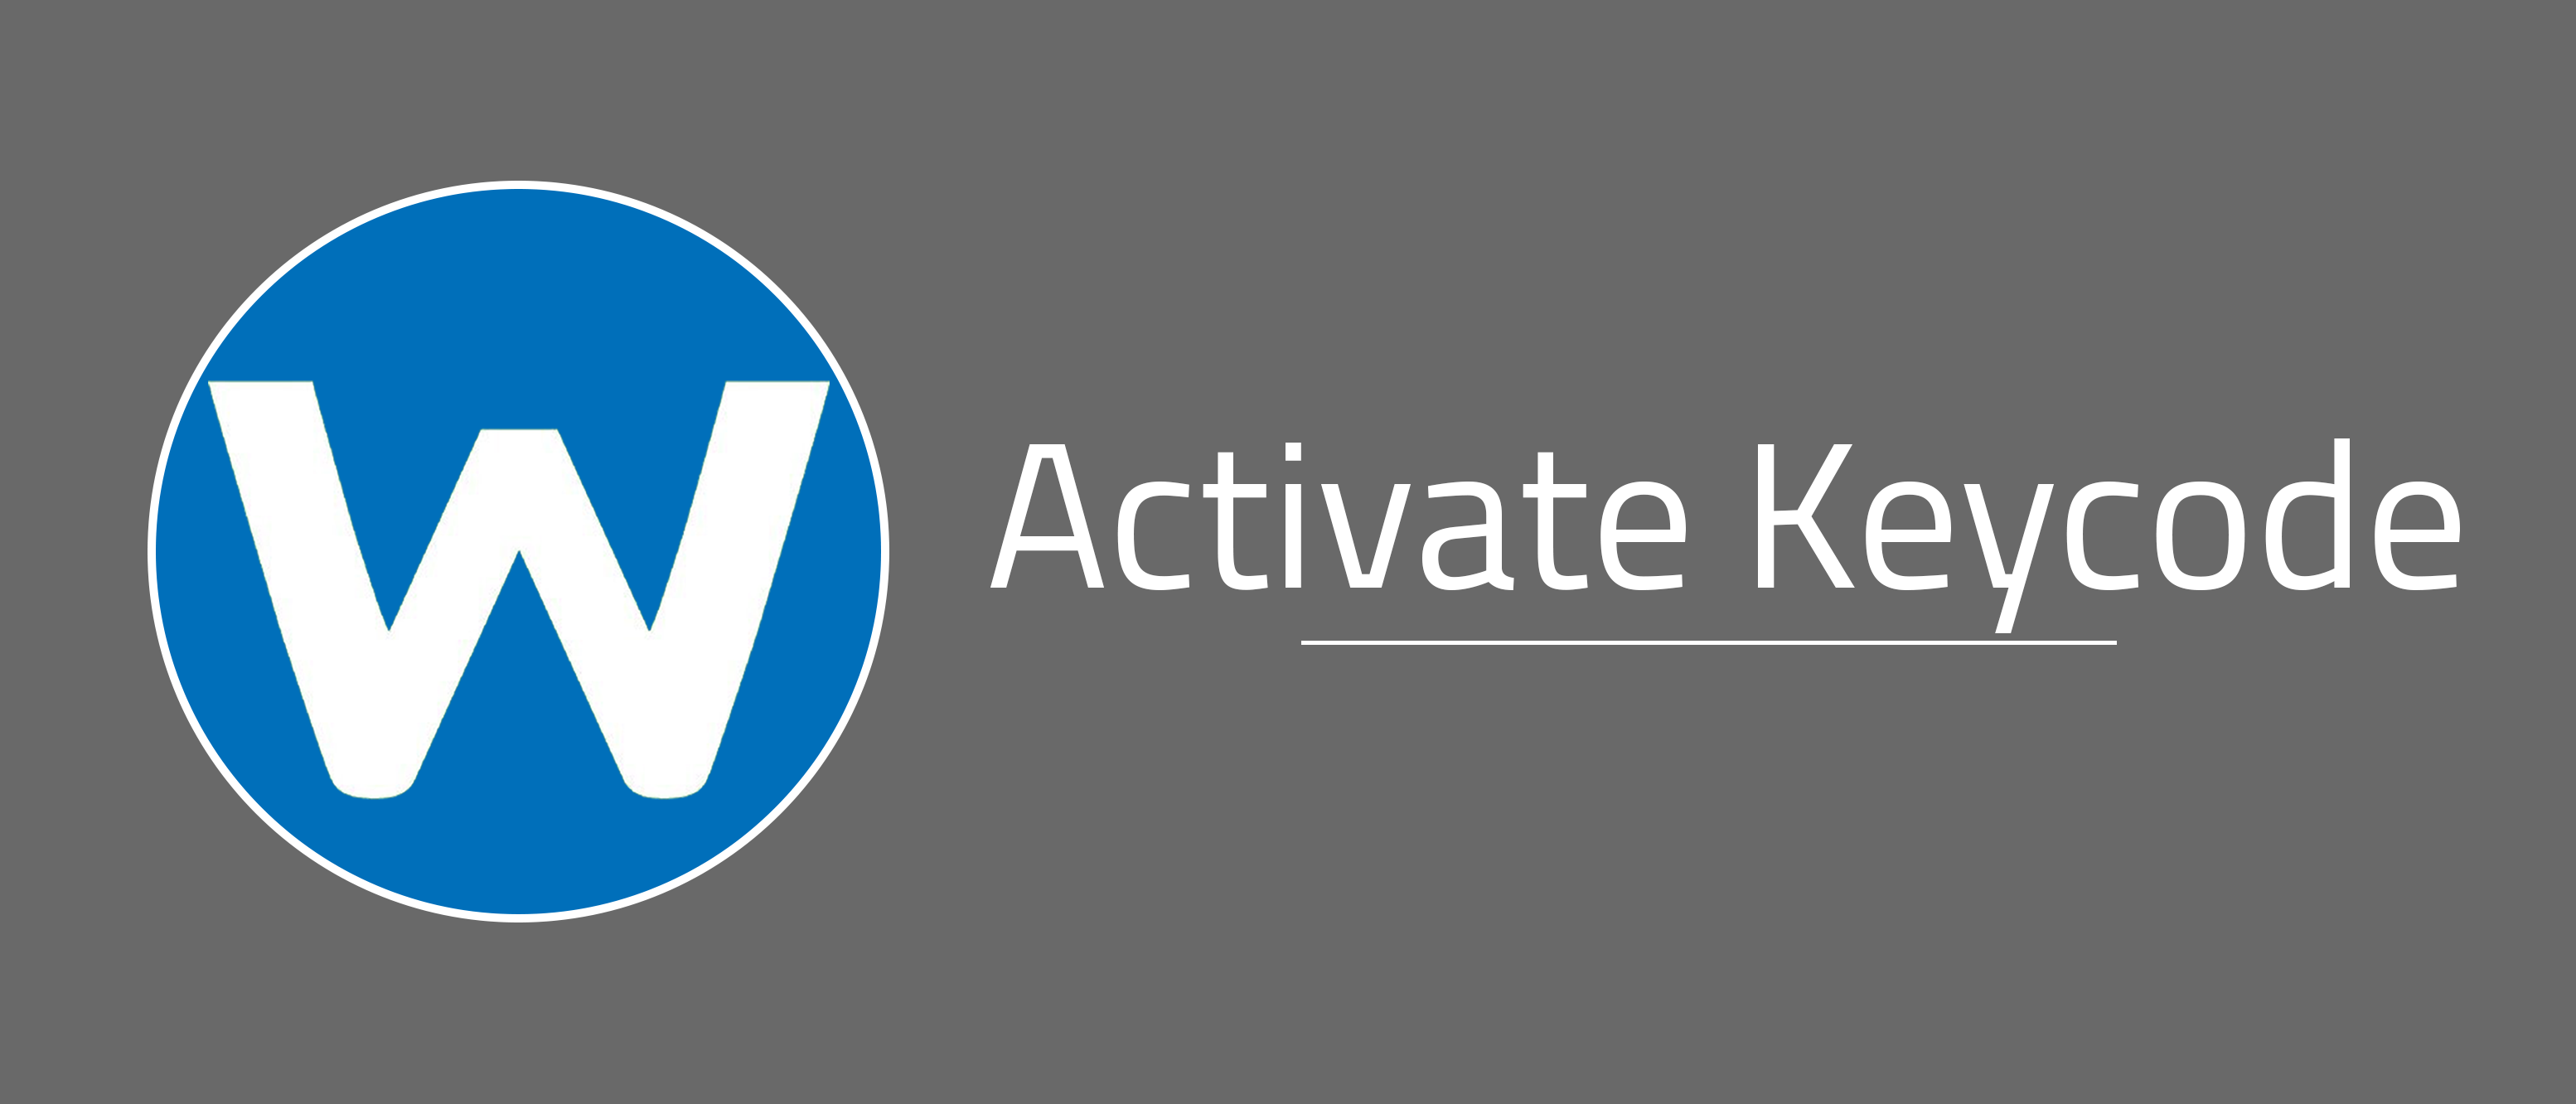 Activate Keycode